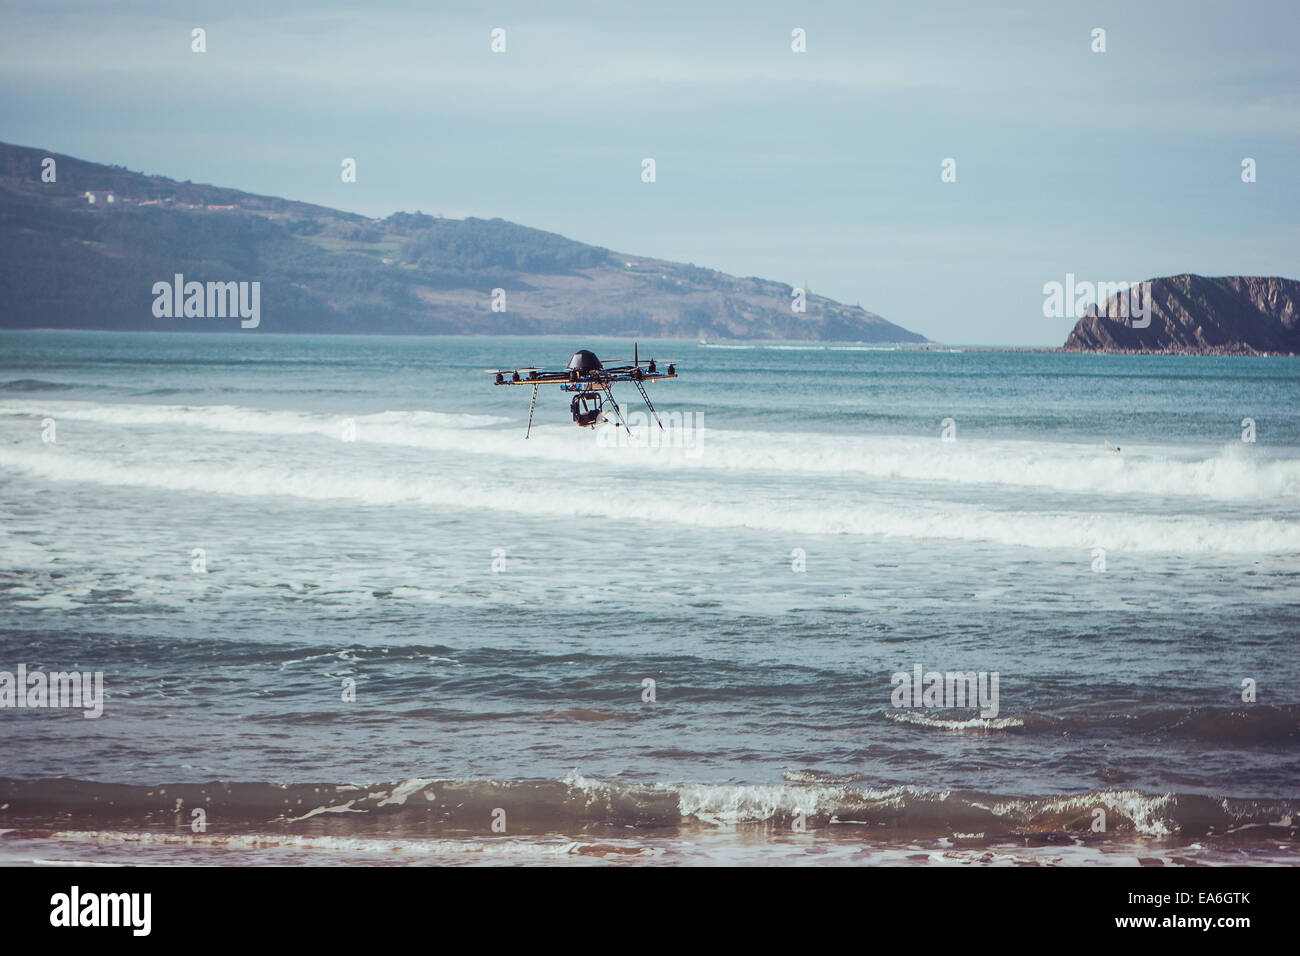 Drone flying over sea, Bermeo, Spain - Stock Image